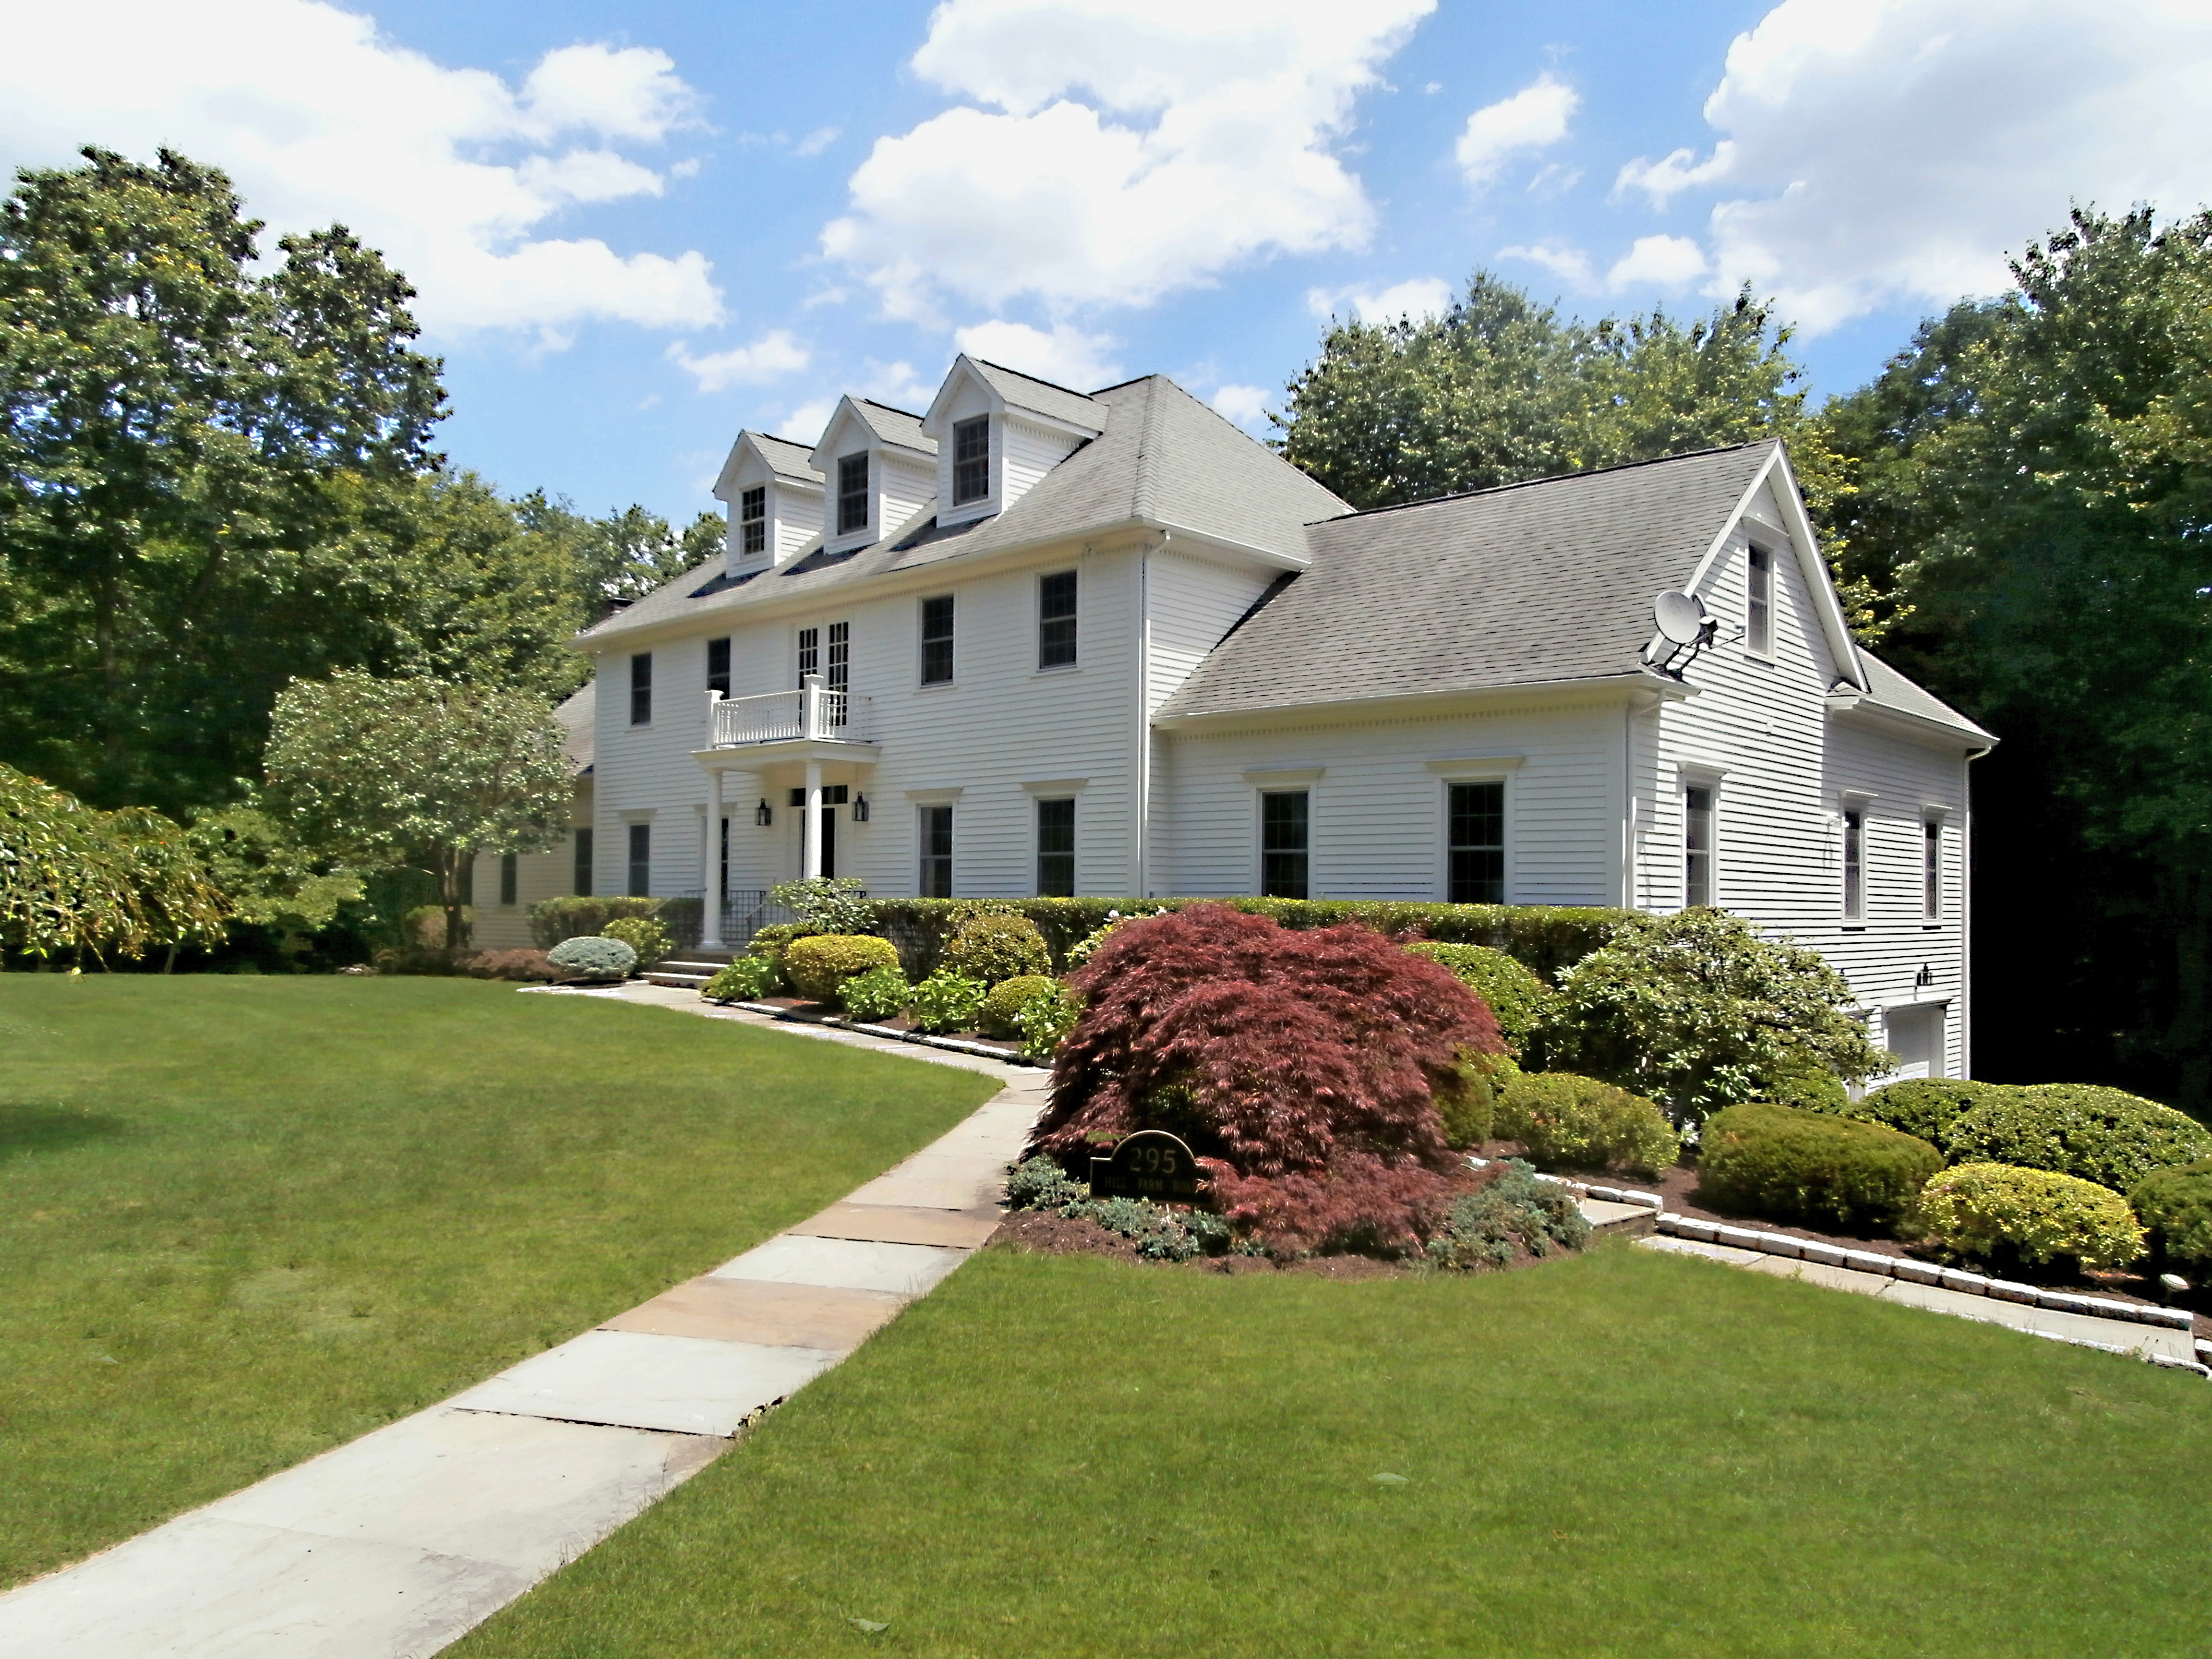 Single Family Home for Sale at Stately Georgian 295 Hill Farm Road Fairfield, Connecticut, 06824 United States